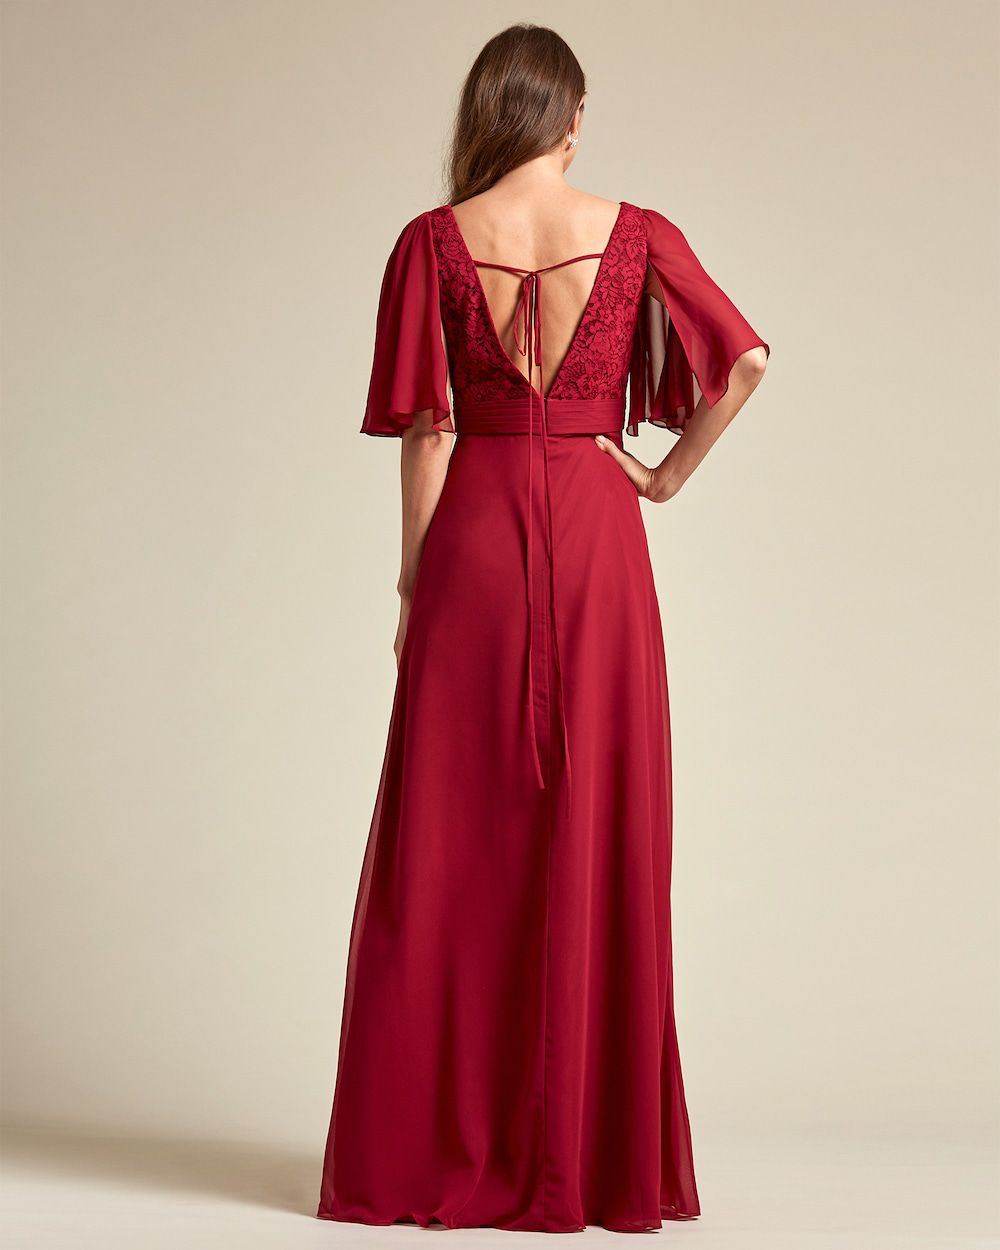 V Neck Embroidered Top With Bell Sleeves Bridesmaid Dress - Back